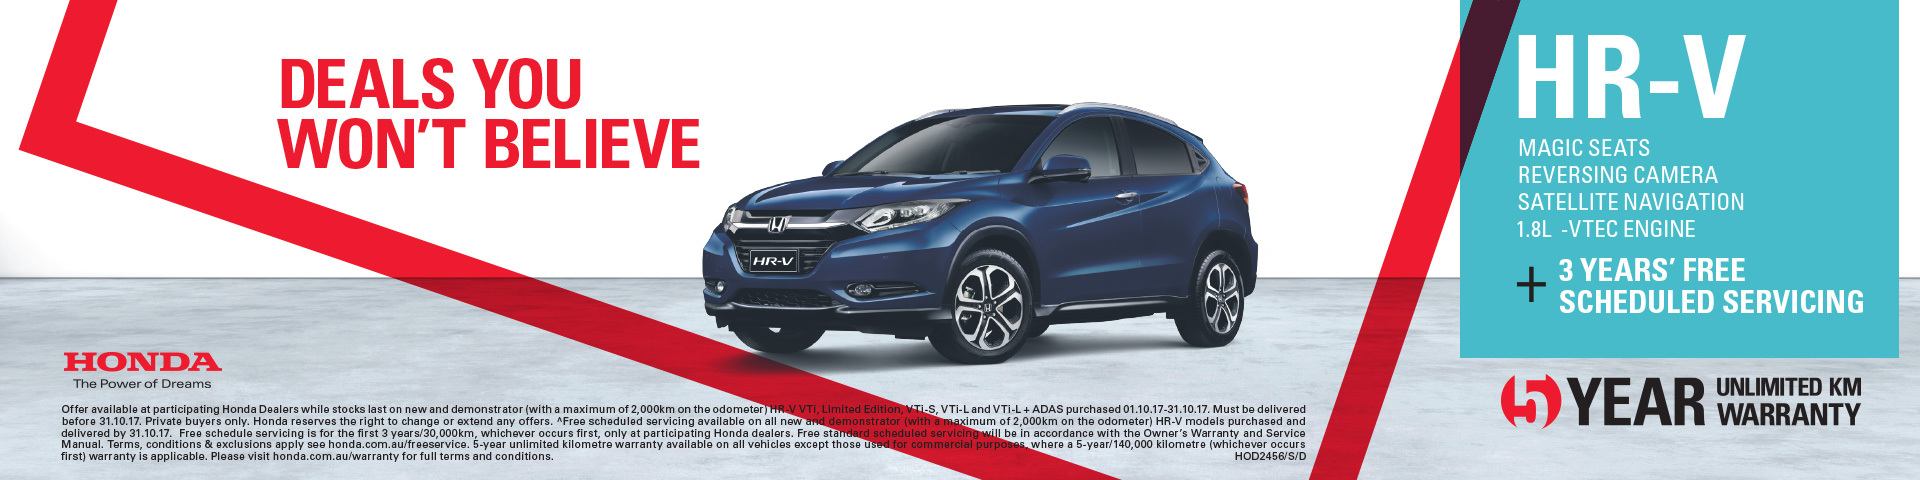 Honda - National Offer - HR-V with 3 Years Scheduled Servicing